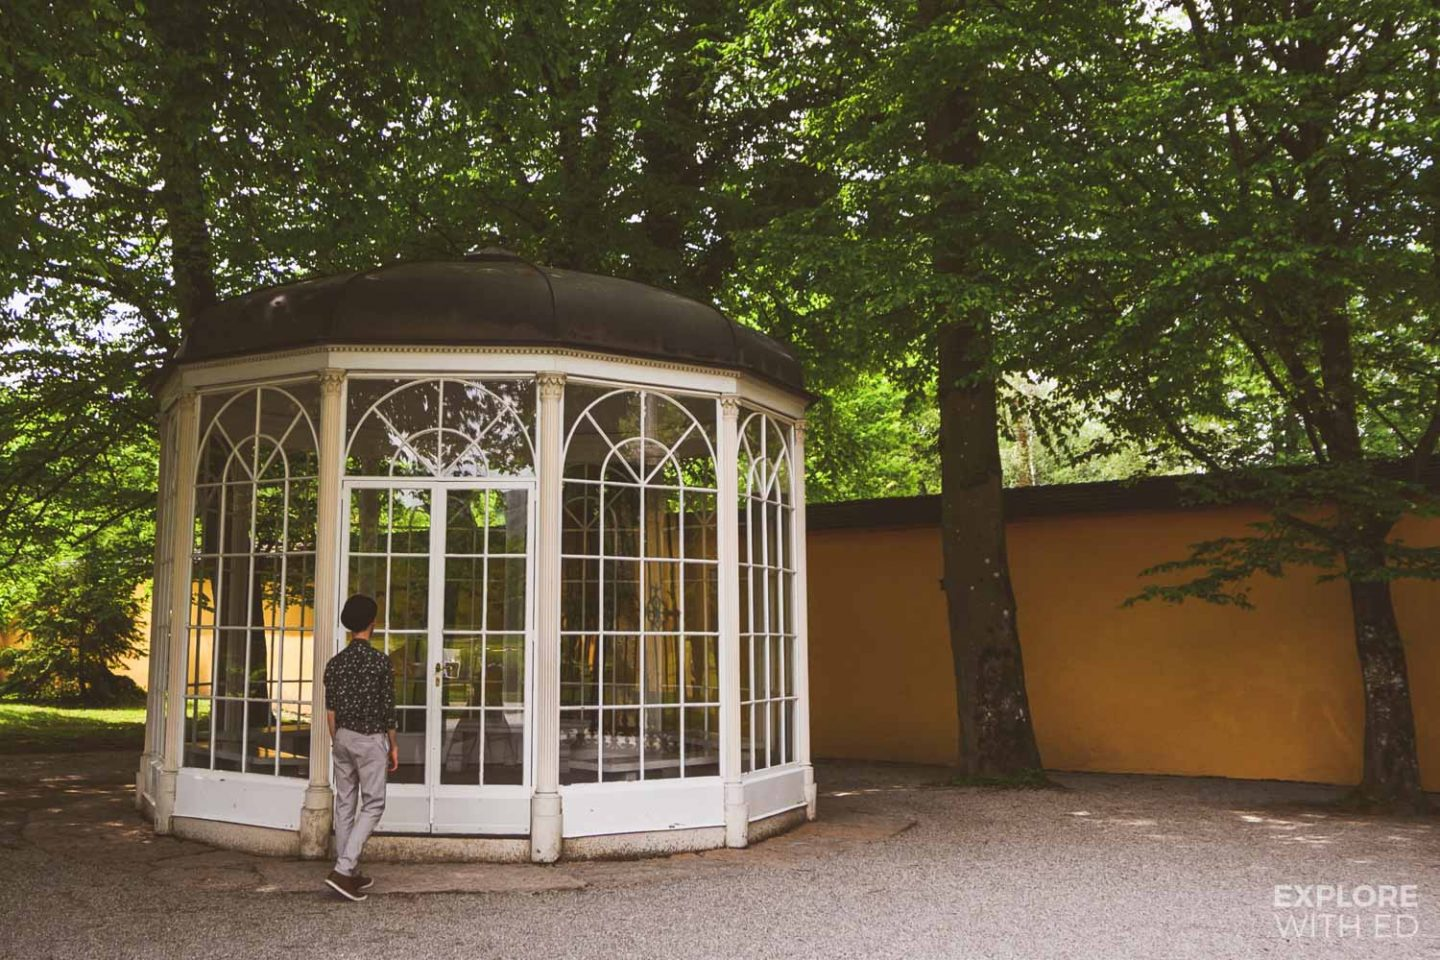 The Sound of Music Gazebo at Hellbrunn Palace